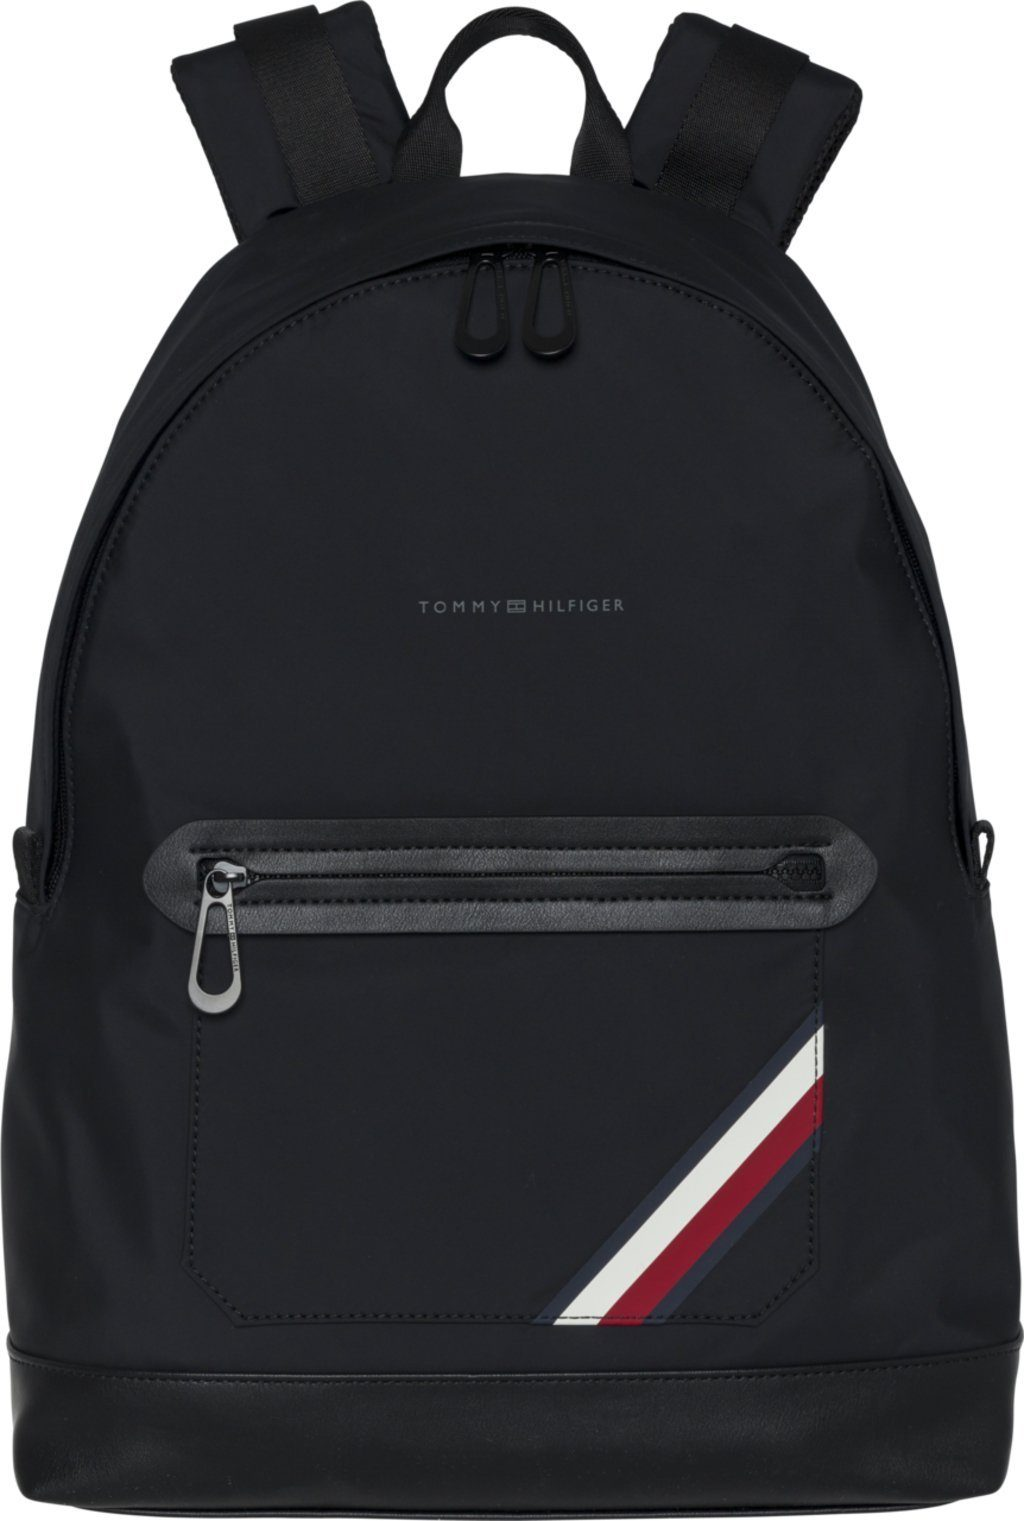 Tommy Hilfiger Tasche »EASY NYLON BACKPACK«